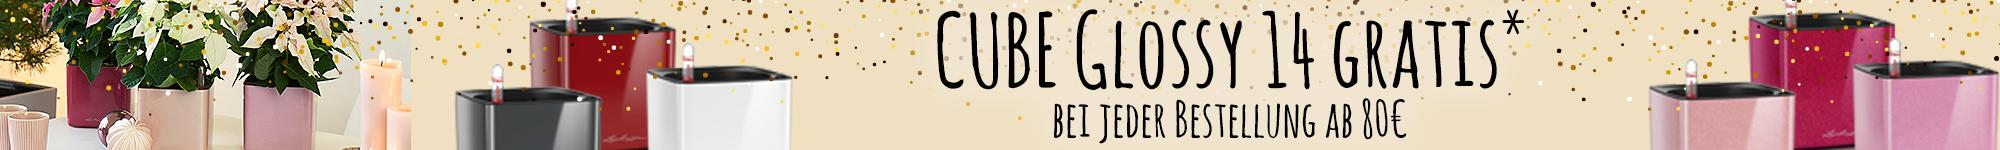 le_listing_banner_cube-glossy_de